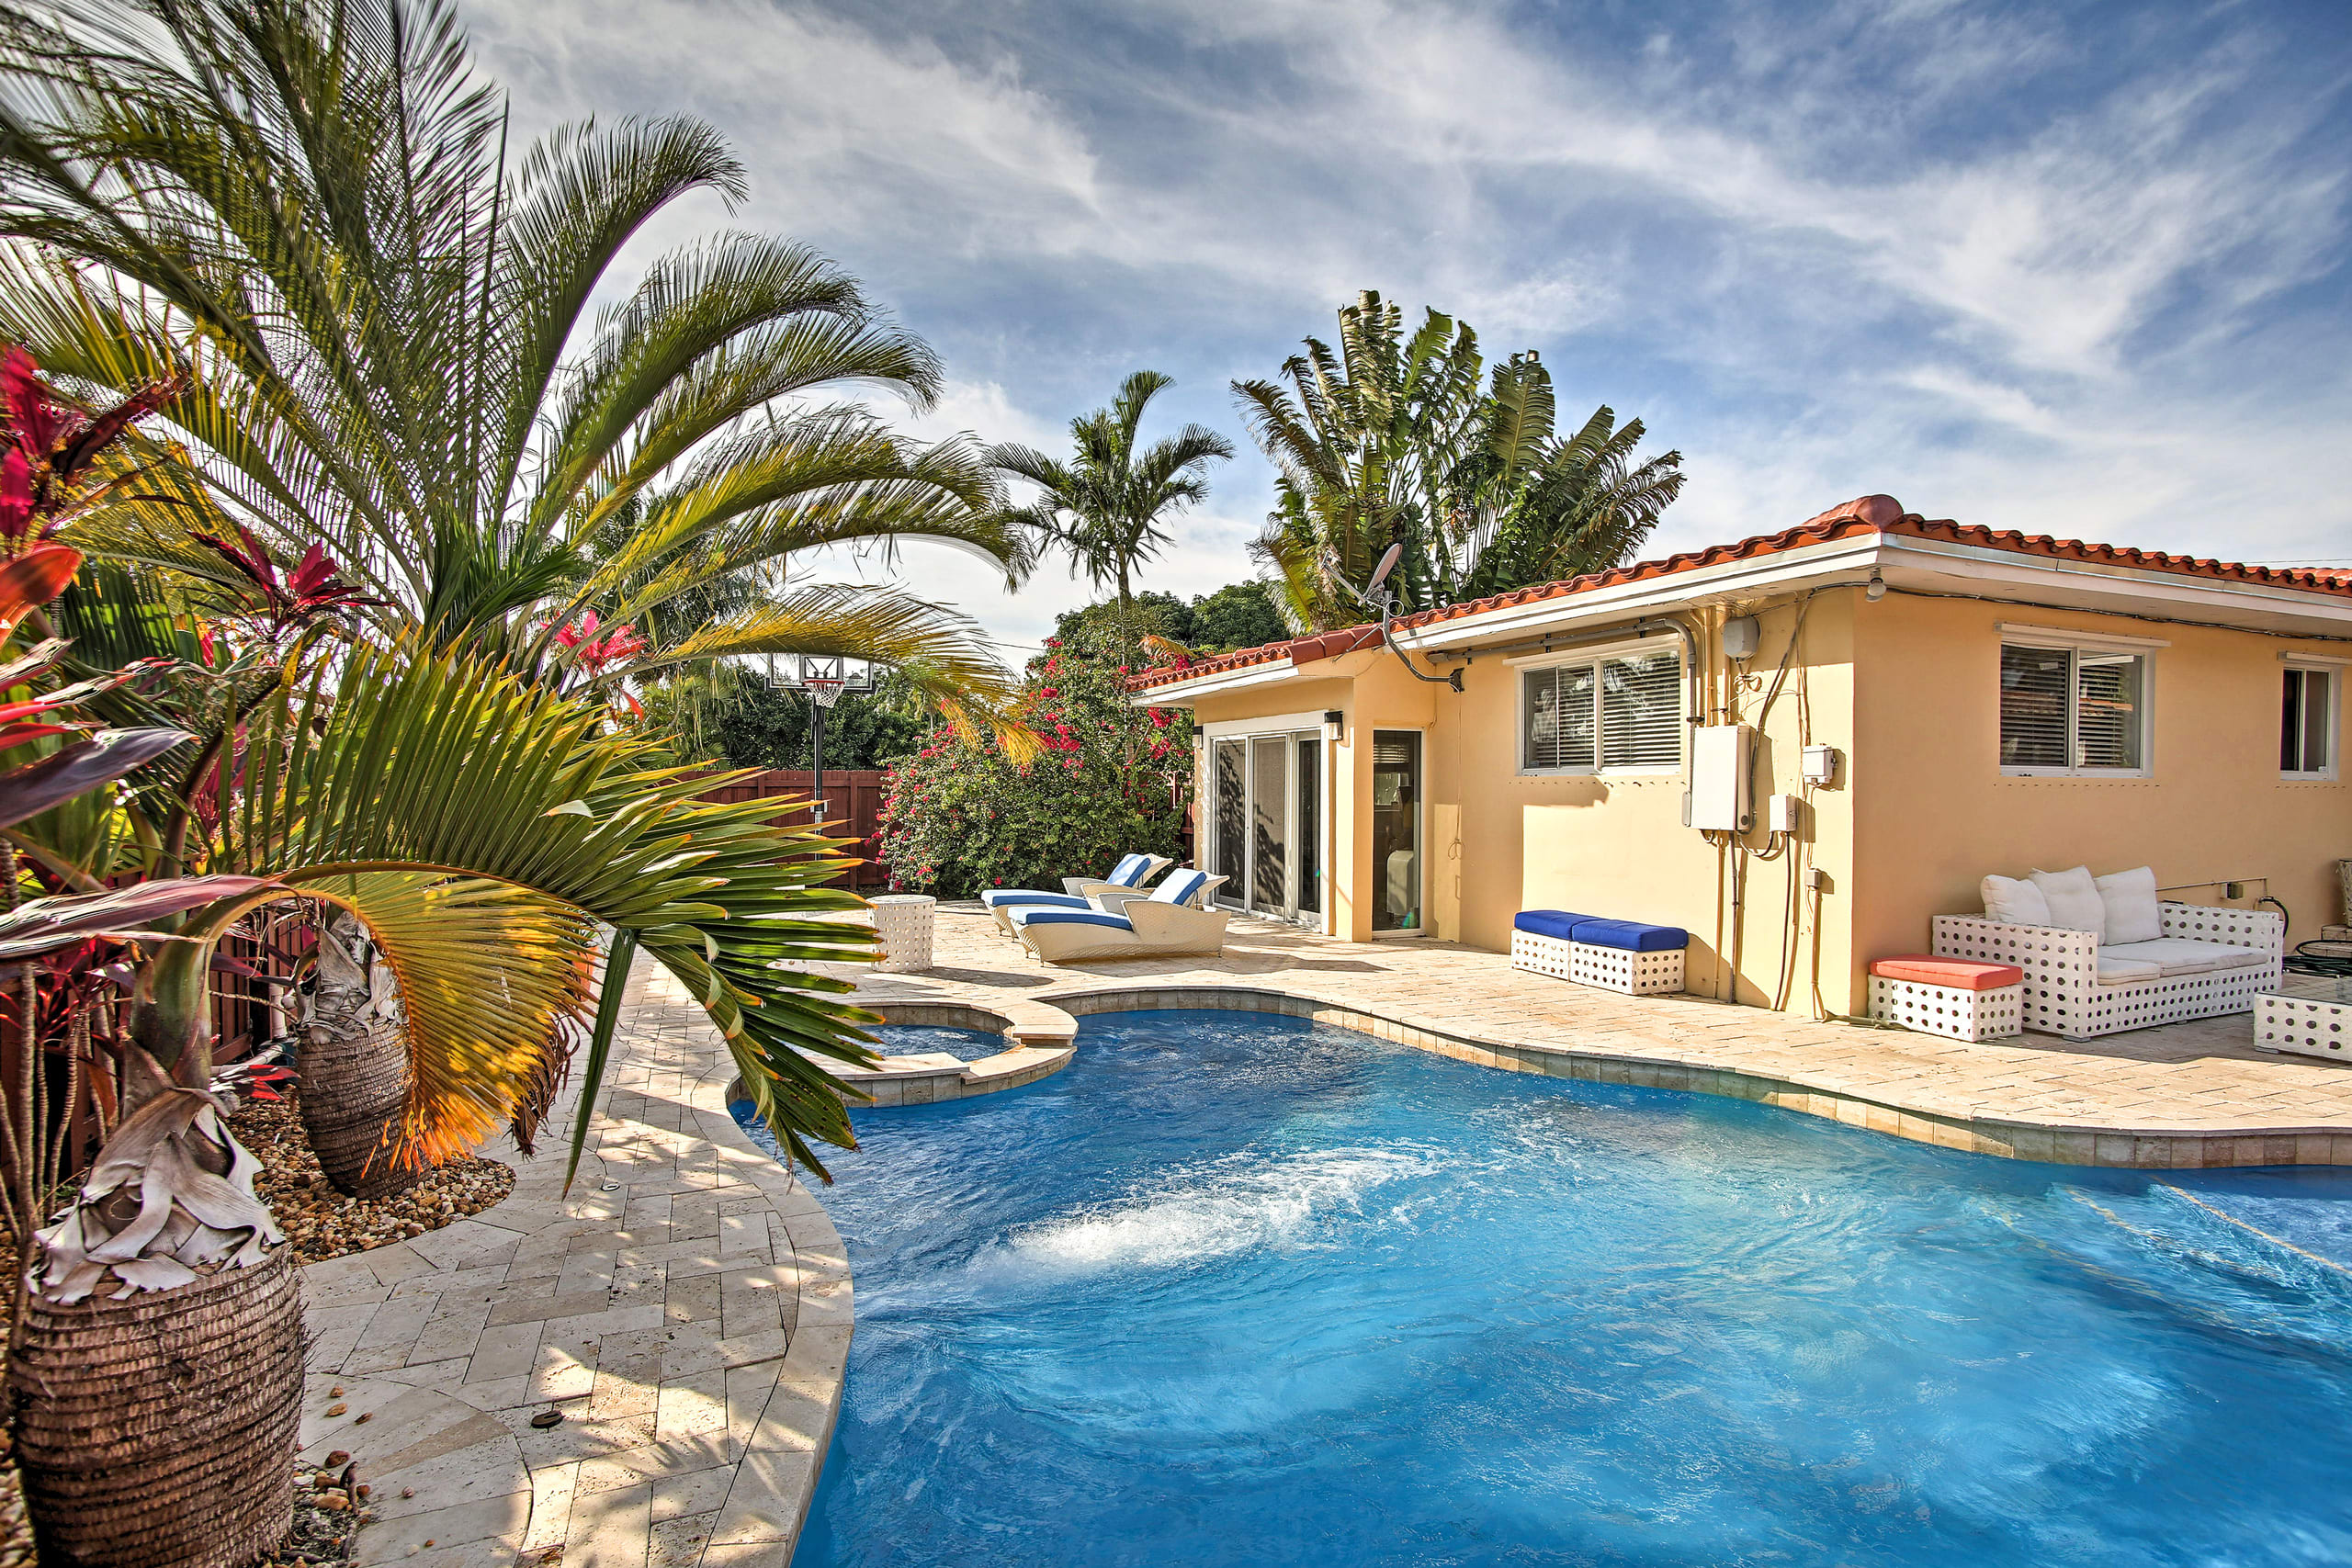 Enjoy the heated pool and hot tub at this vacation rental home in Hollywood!